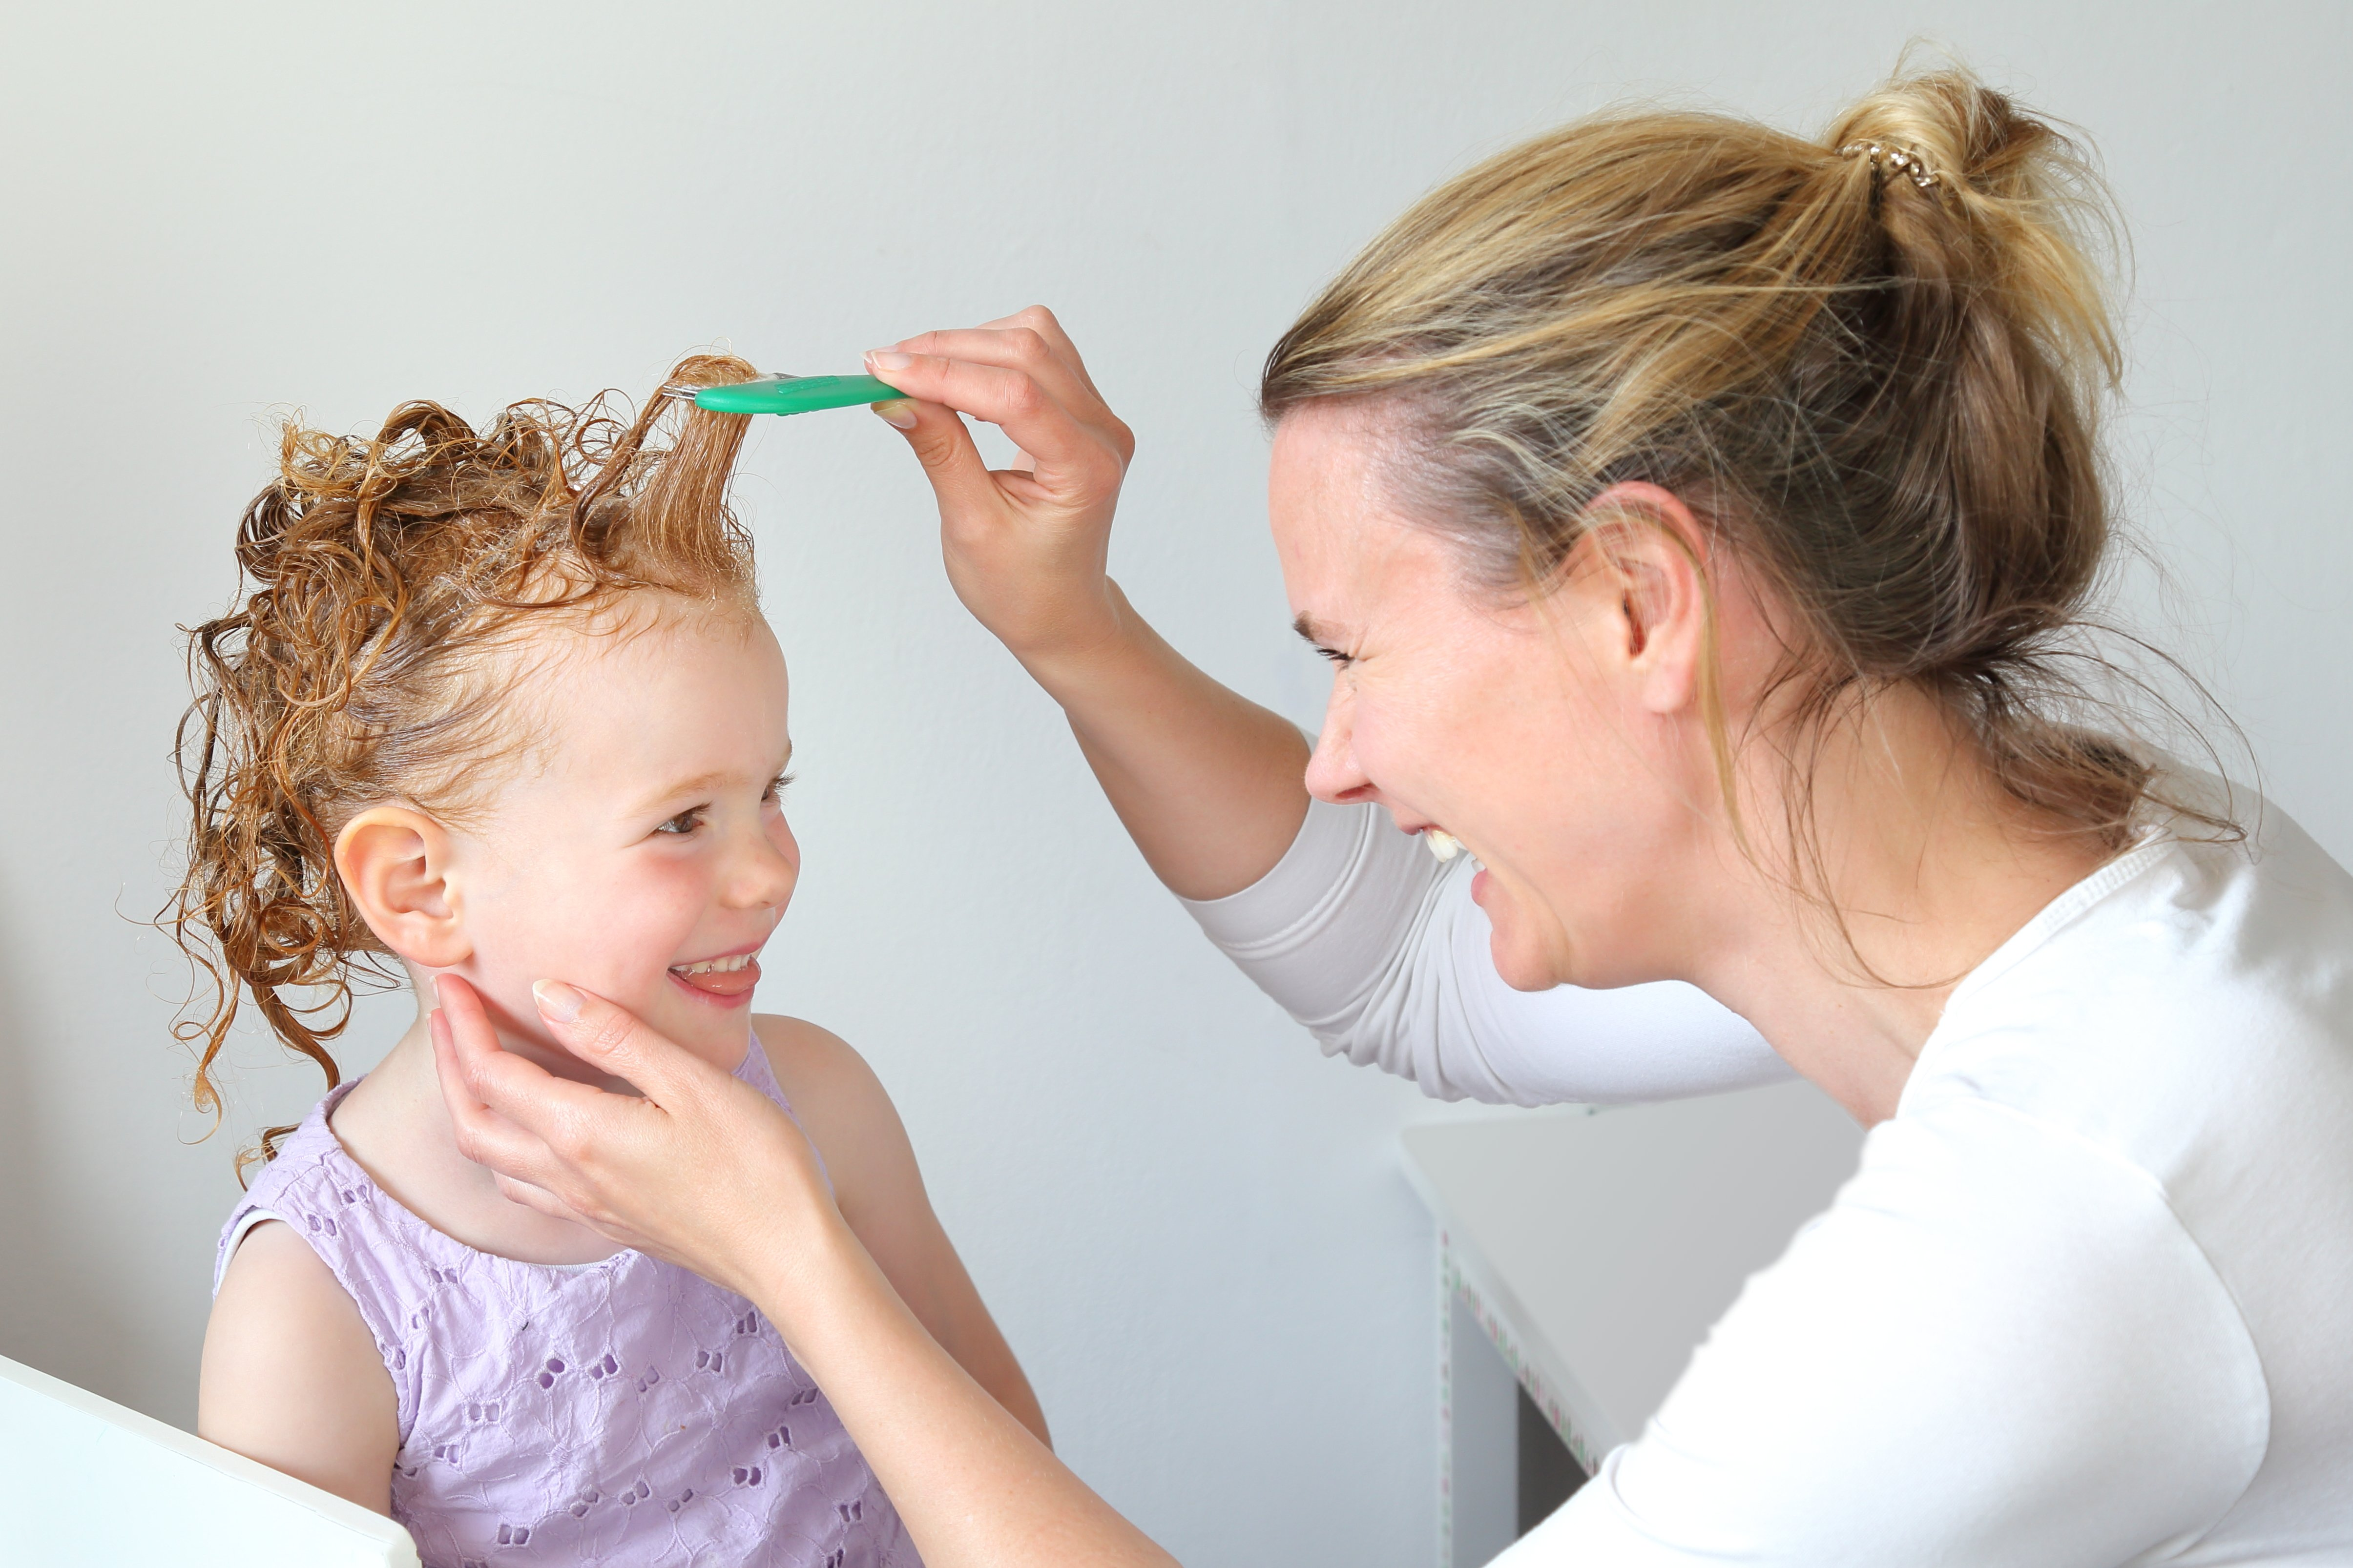 Washing out Head lice in the hair of a child | Photo: Shuttershock